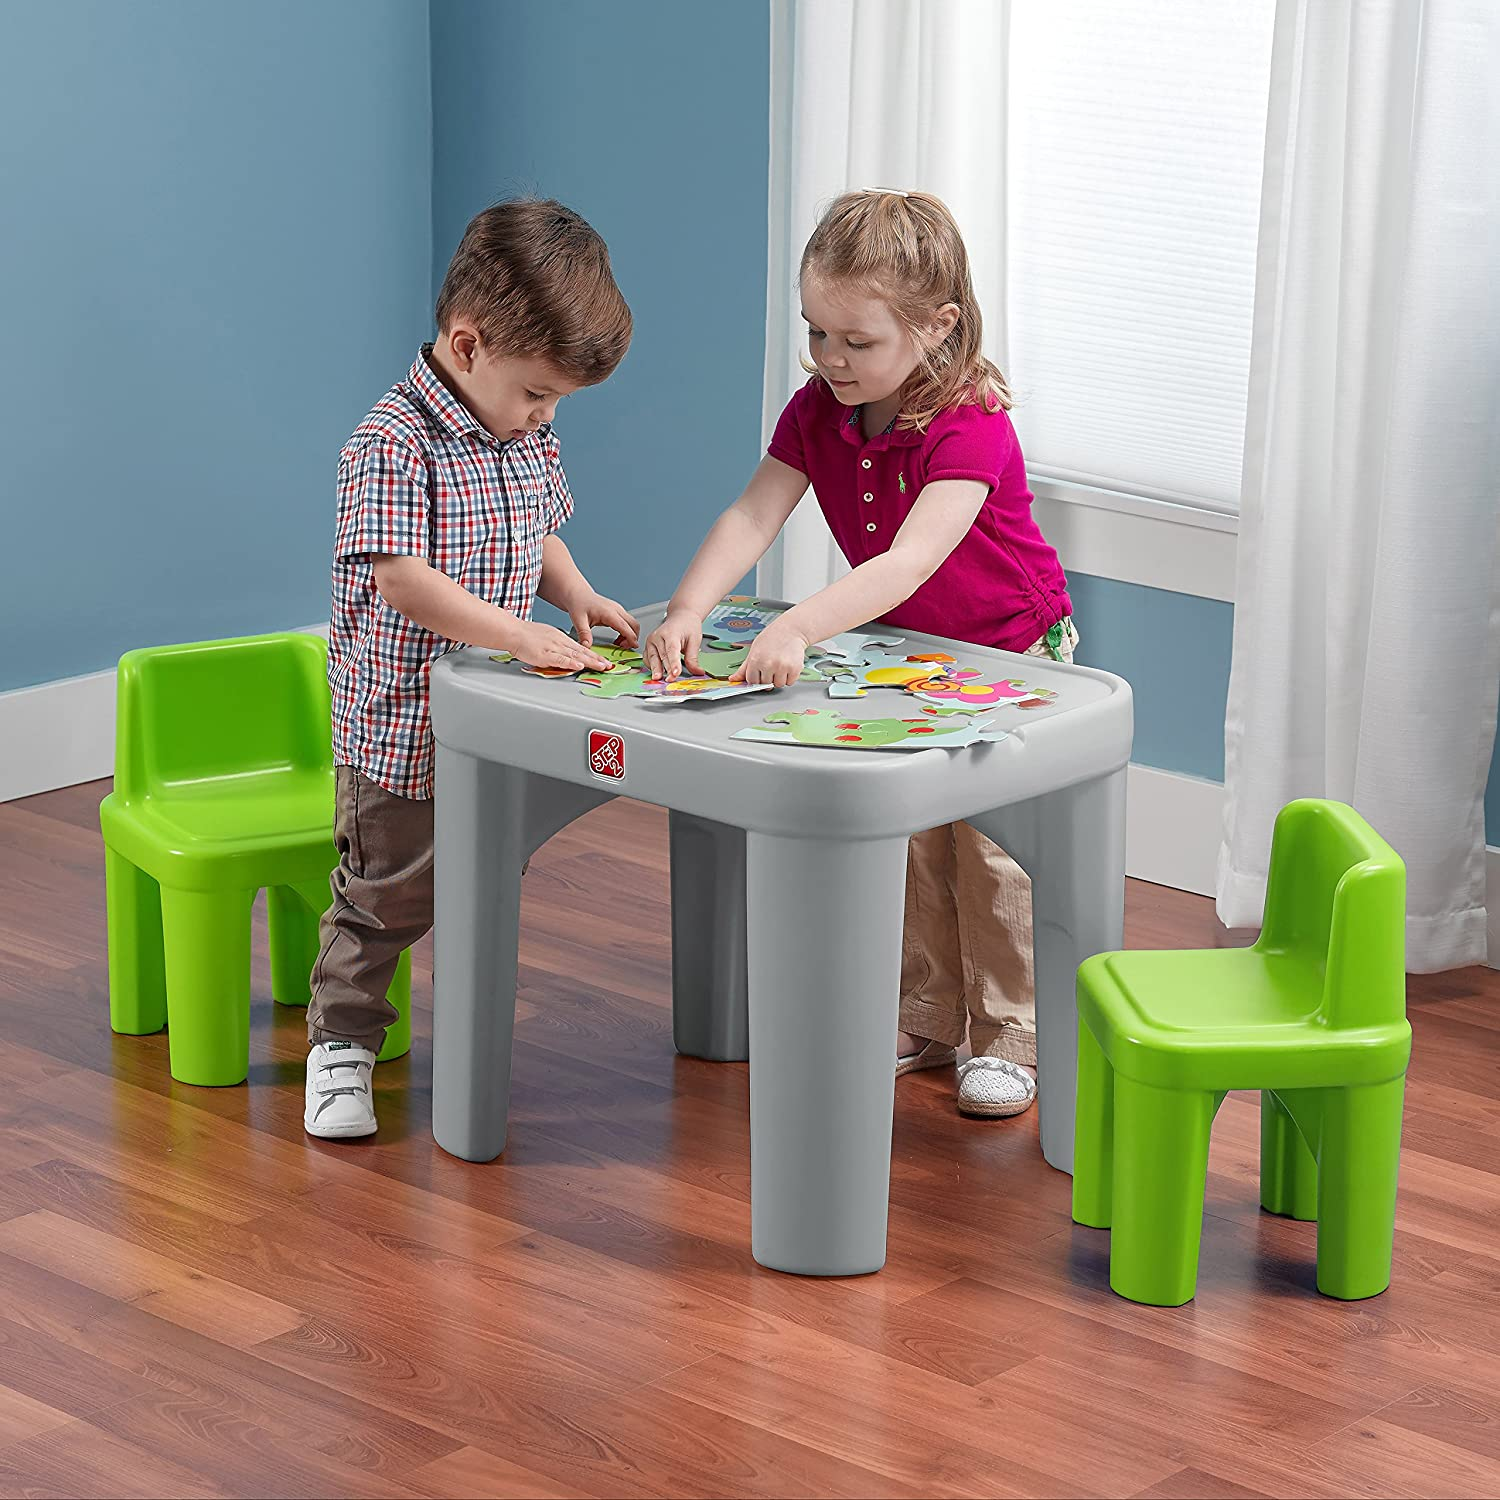 Amazon Step2 Mighty My Size Table and Chairs Set Toys & Games